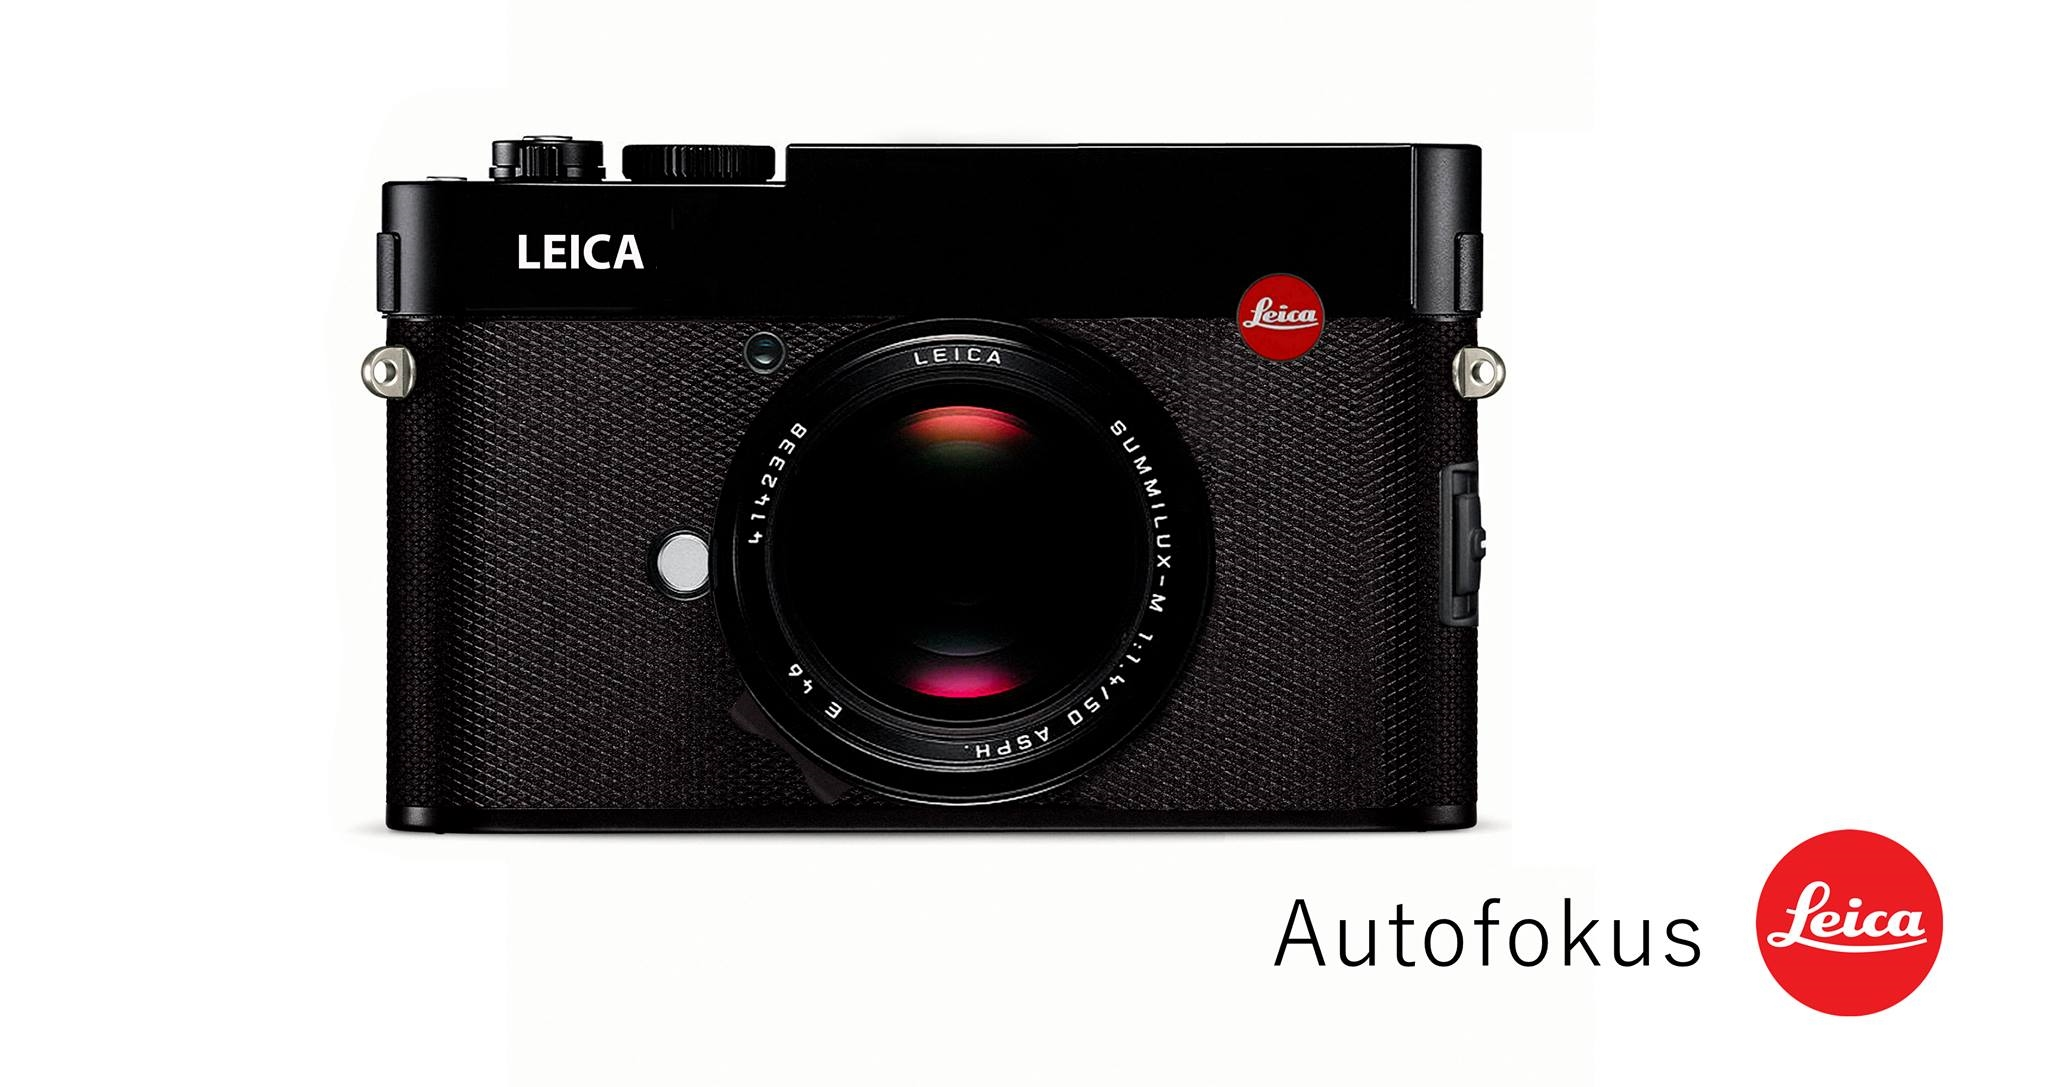 Artist impression of an Interchangeable Leica Q